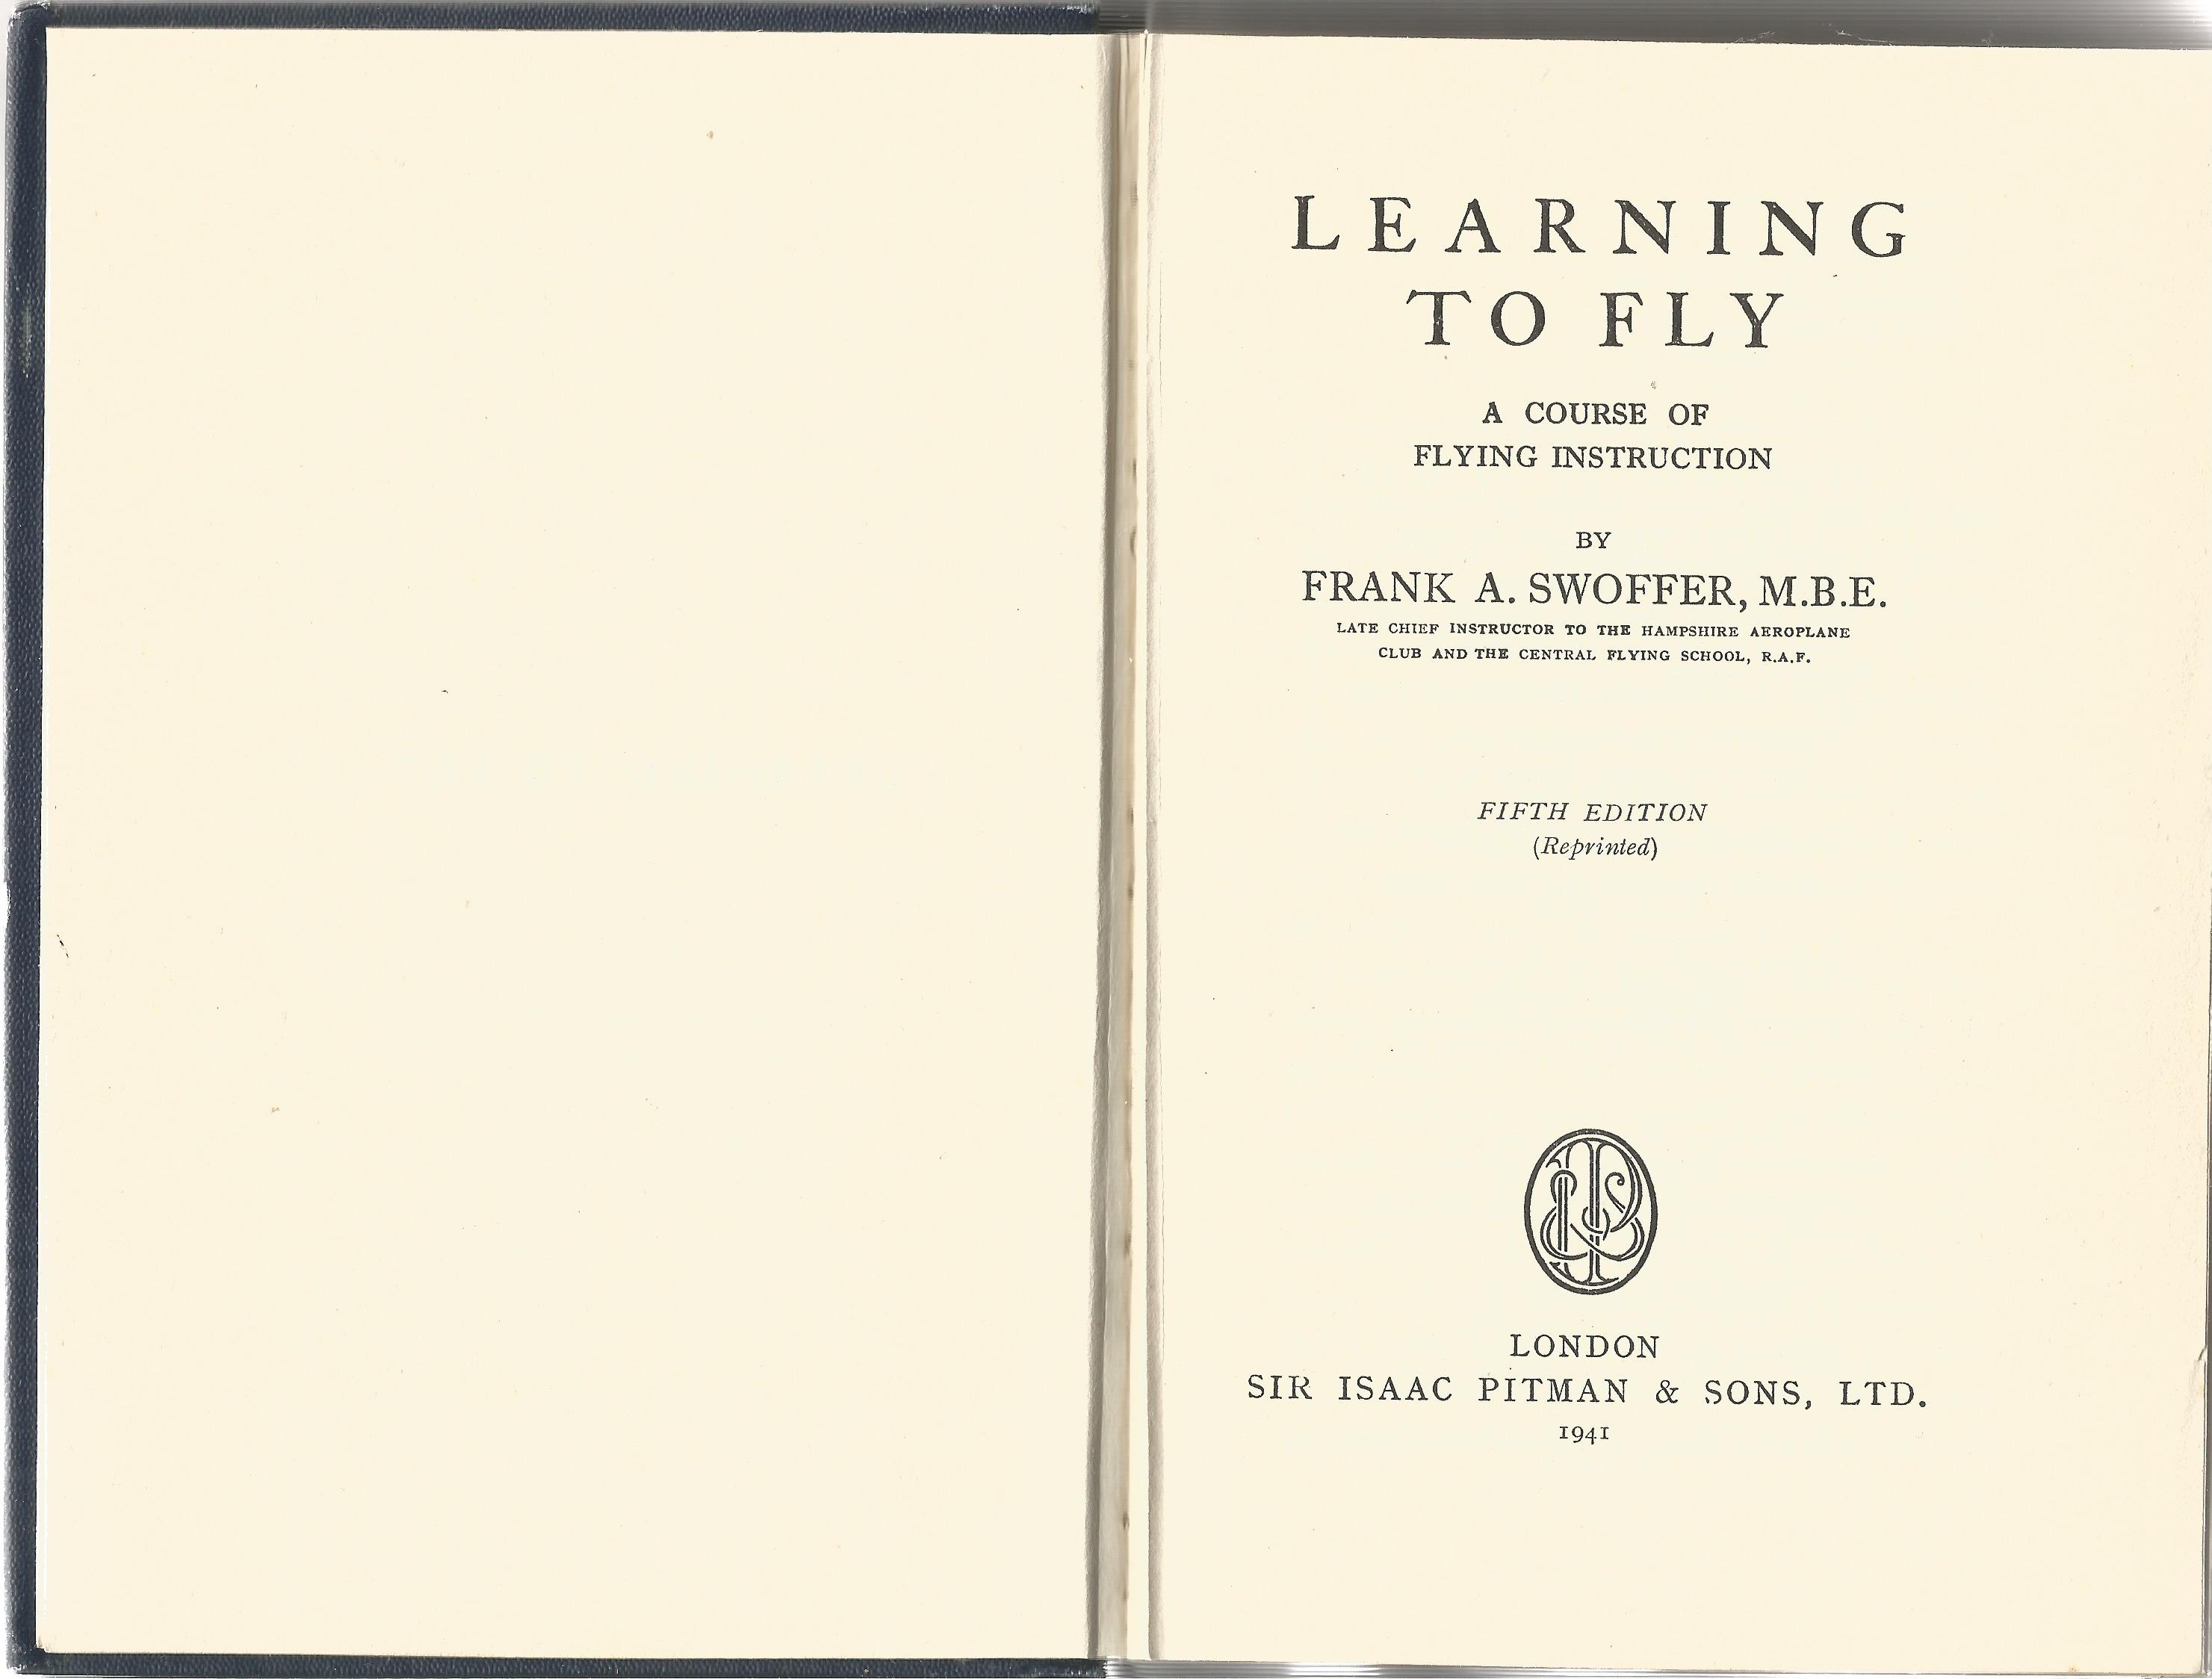 Frank A Swoffer MBE. Learning To Fly. A Fith Edition hardback book. Signed by P/O J Ross RAF.VR, - Image 2 of 3